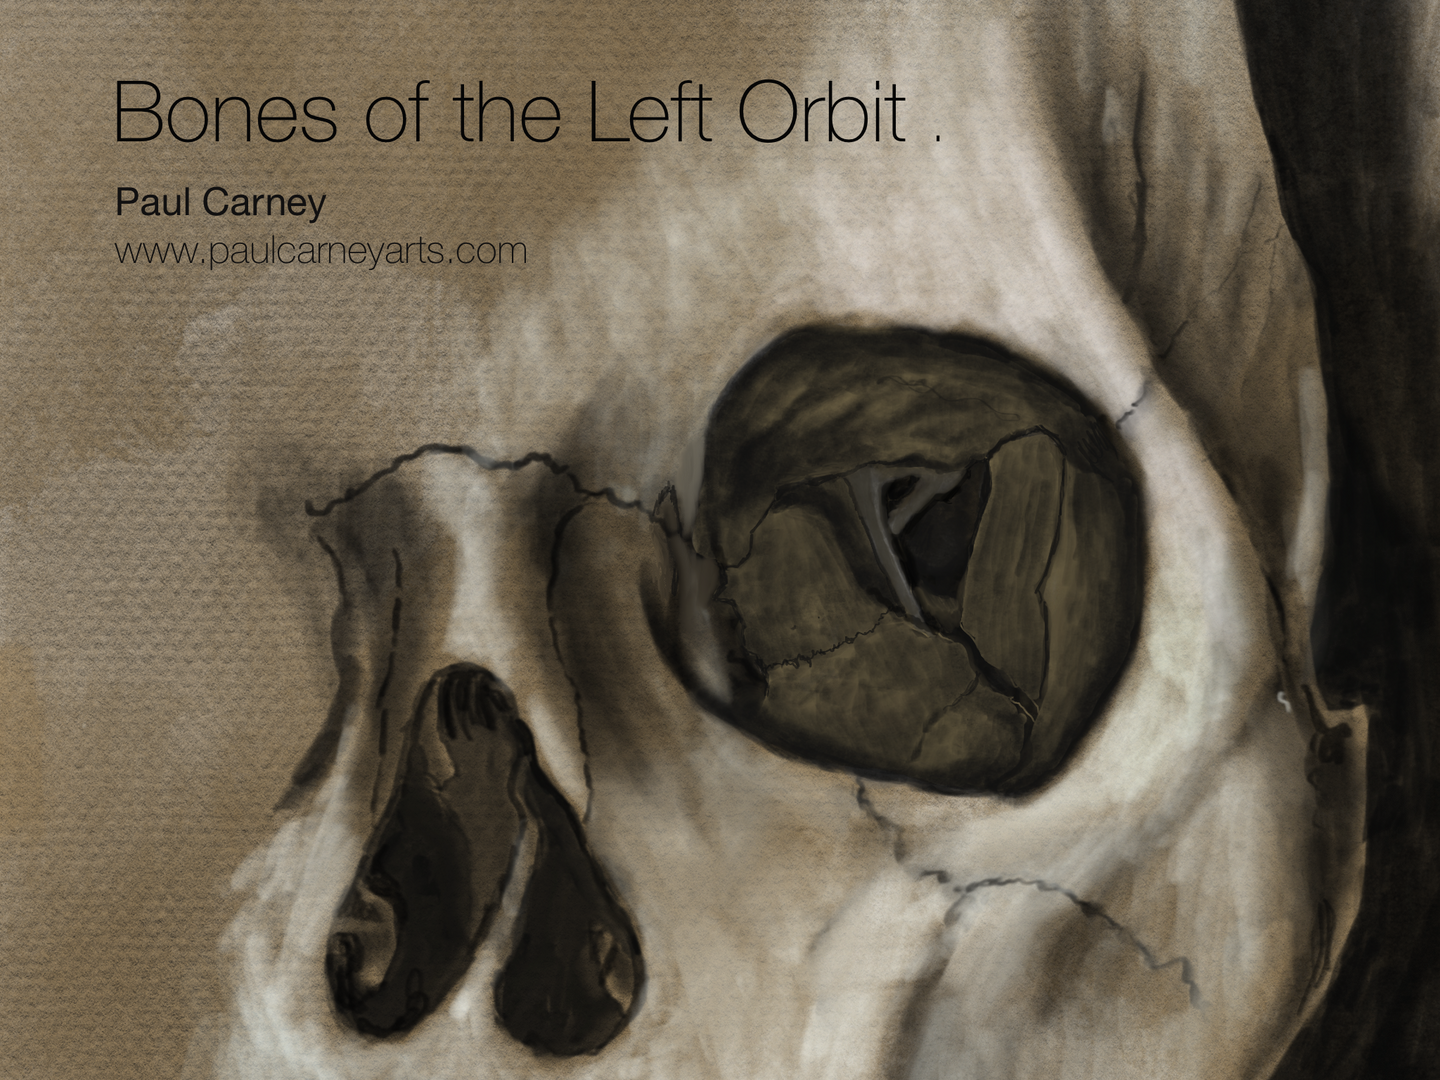 Bones of the left orbit